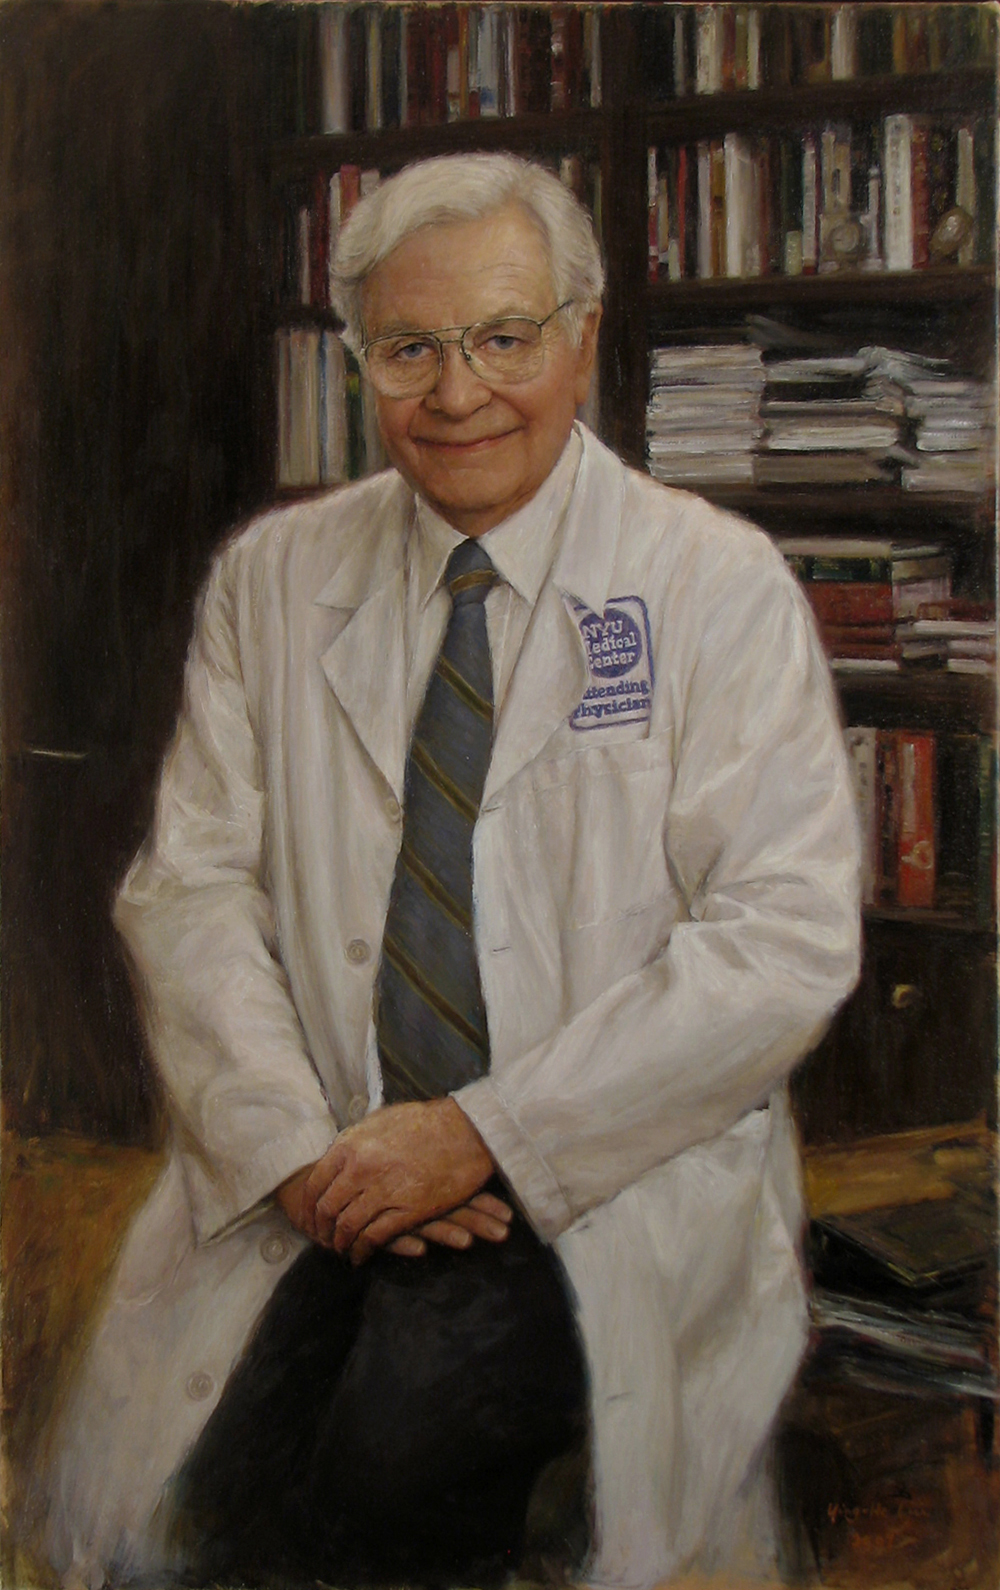 """Saul J. Farber, M.D., MACP       Dean of New York University School of Medicine      Provost of NYU Medicinal Center      President Emeritus of the American College of Physicians      Oil on linen 46""""x29"""""""